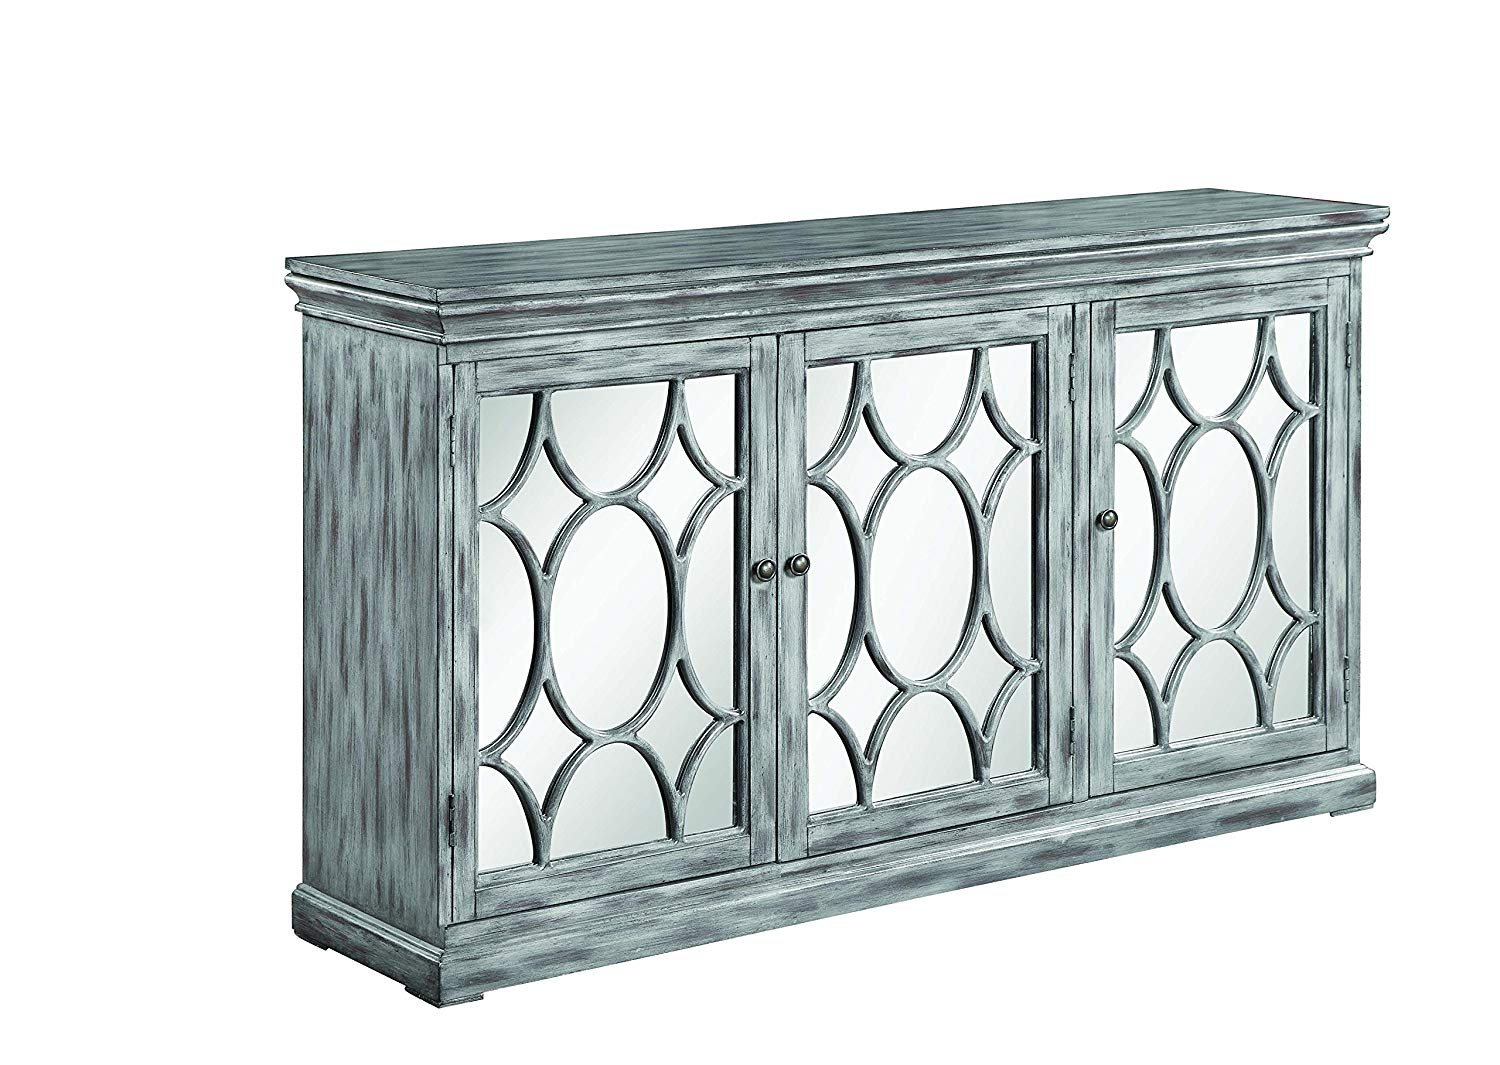 scott living accent cabinet with three mirrored doors table antique grey kitchen dining pottery barn frog drum tray end mirror outdoor chairs clearance trestle wooden bunnings